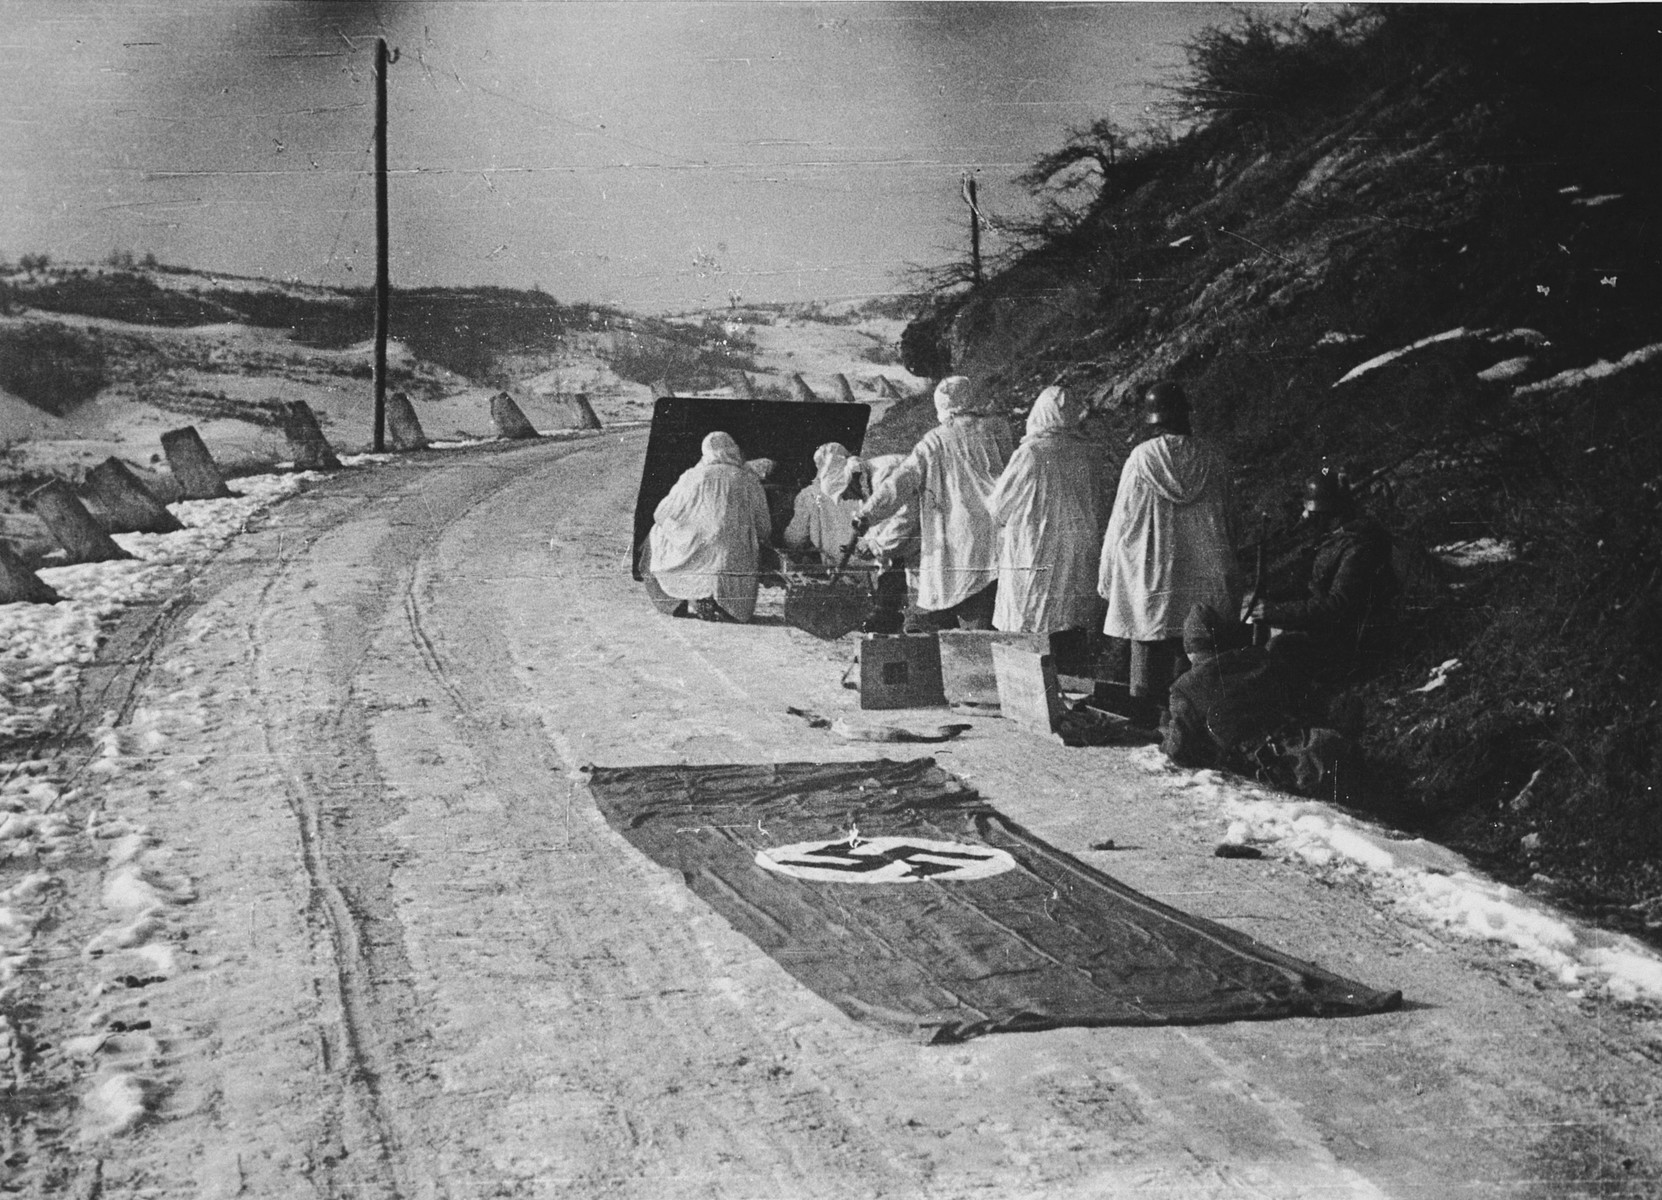 """SS Soldiers from the Prinz Eugen Division in Croatia hide with their guns on a snowy street while a Nazi flag lays spread out on the road behind them.   The original Waffen-SS caption of the Waffen-SS reads """"Strassensicherung bei Rijeka""""; Tranlsation, """"Safeguarding of a streeet near Rijeka""""."""